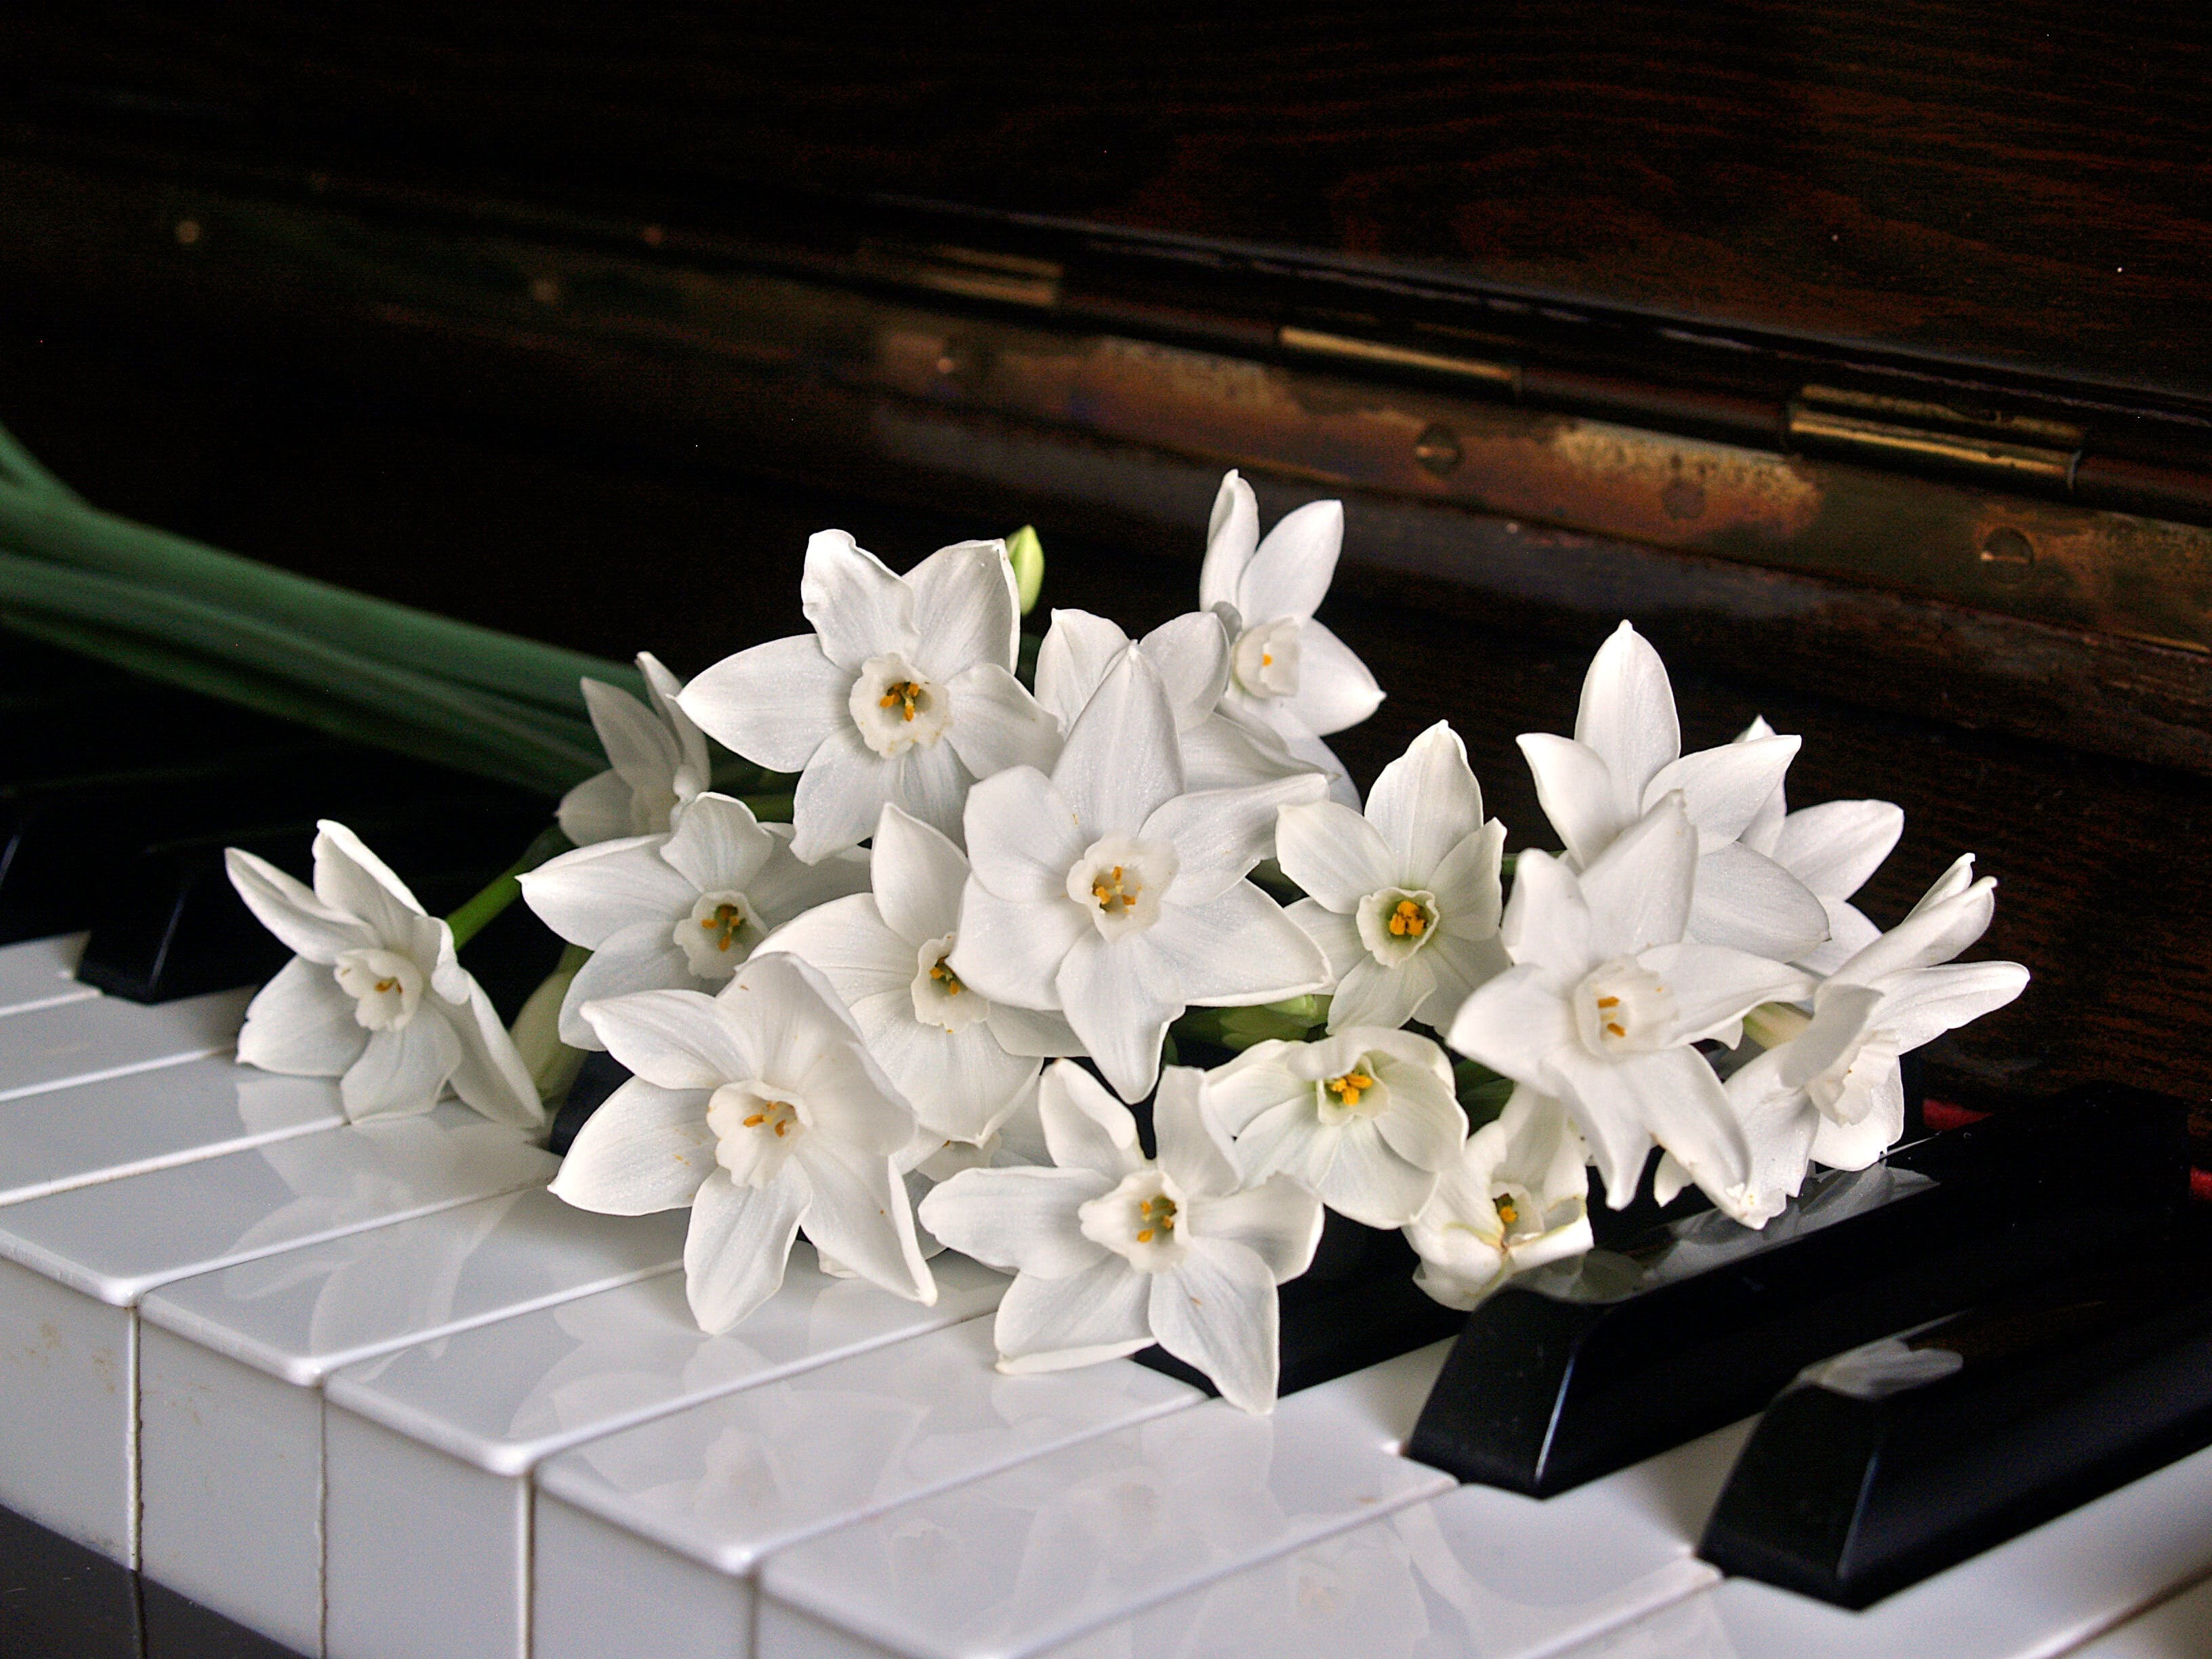 White Orchid on Brown Wooden Piano